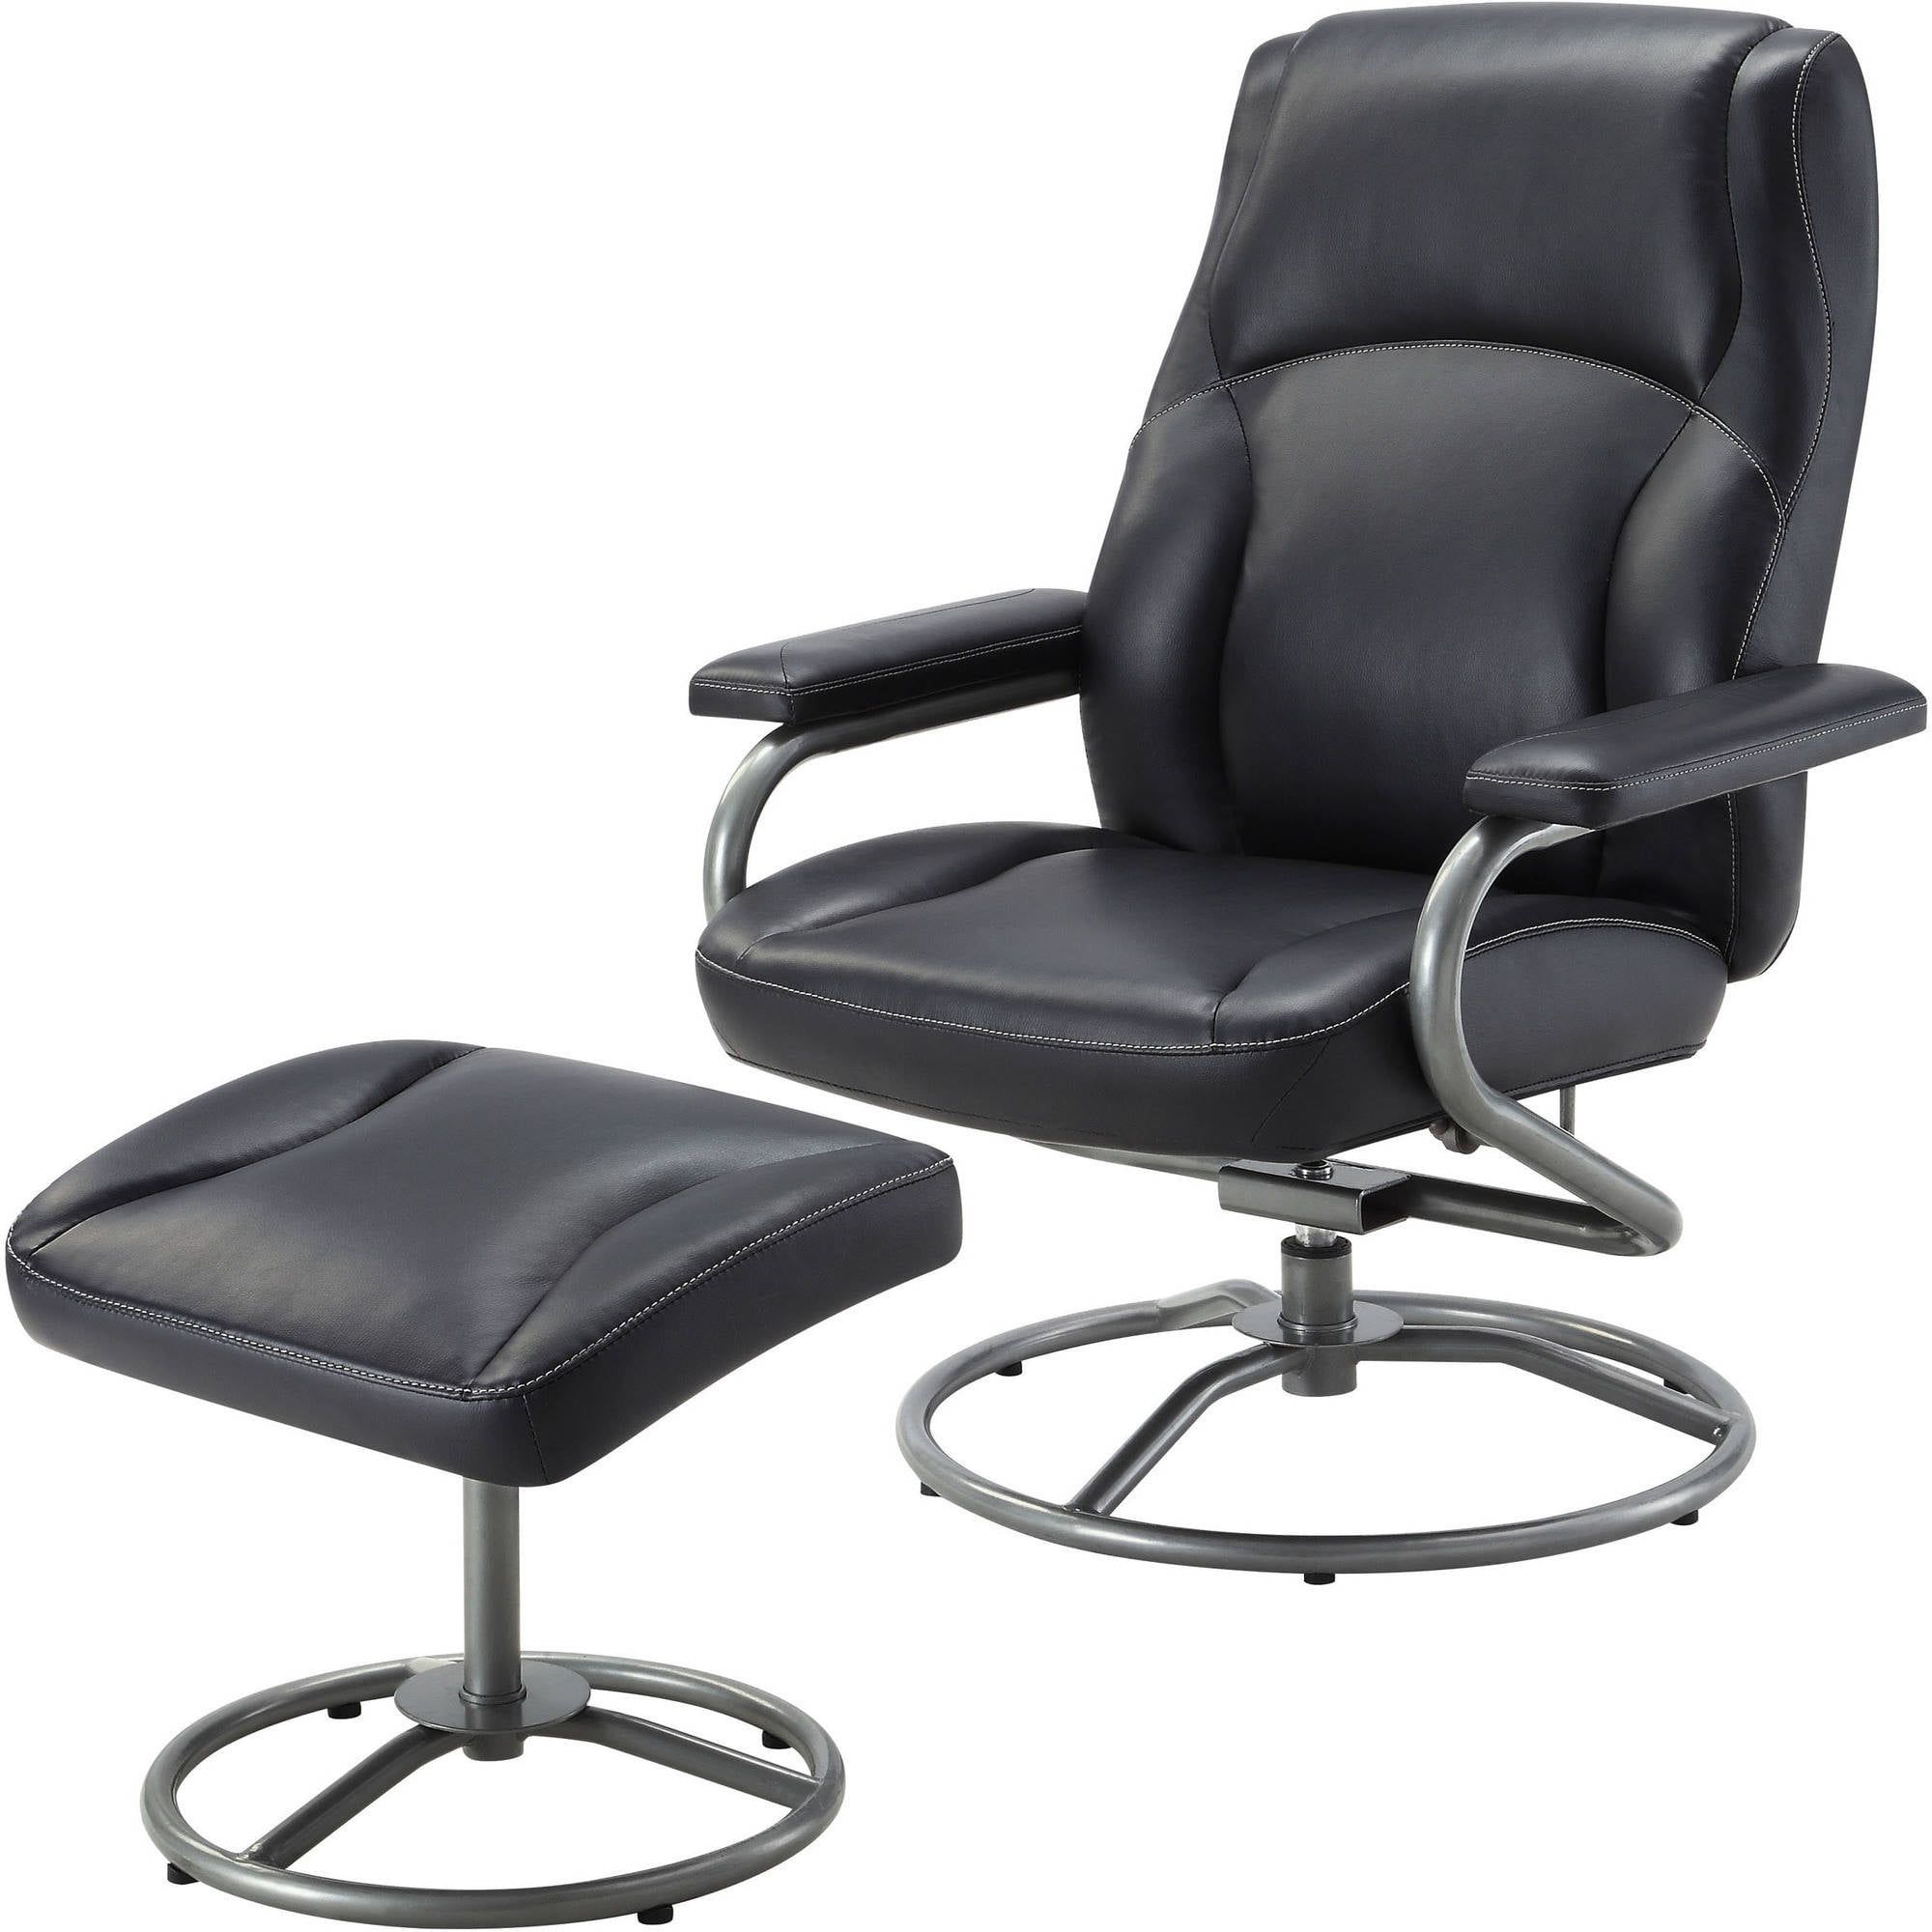 Mainstays Plush Pillowed Recliner Swivel Chair And Ottoman Set, Vinyl,  Multiple Colors   Walmart.com